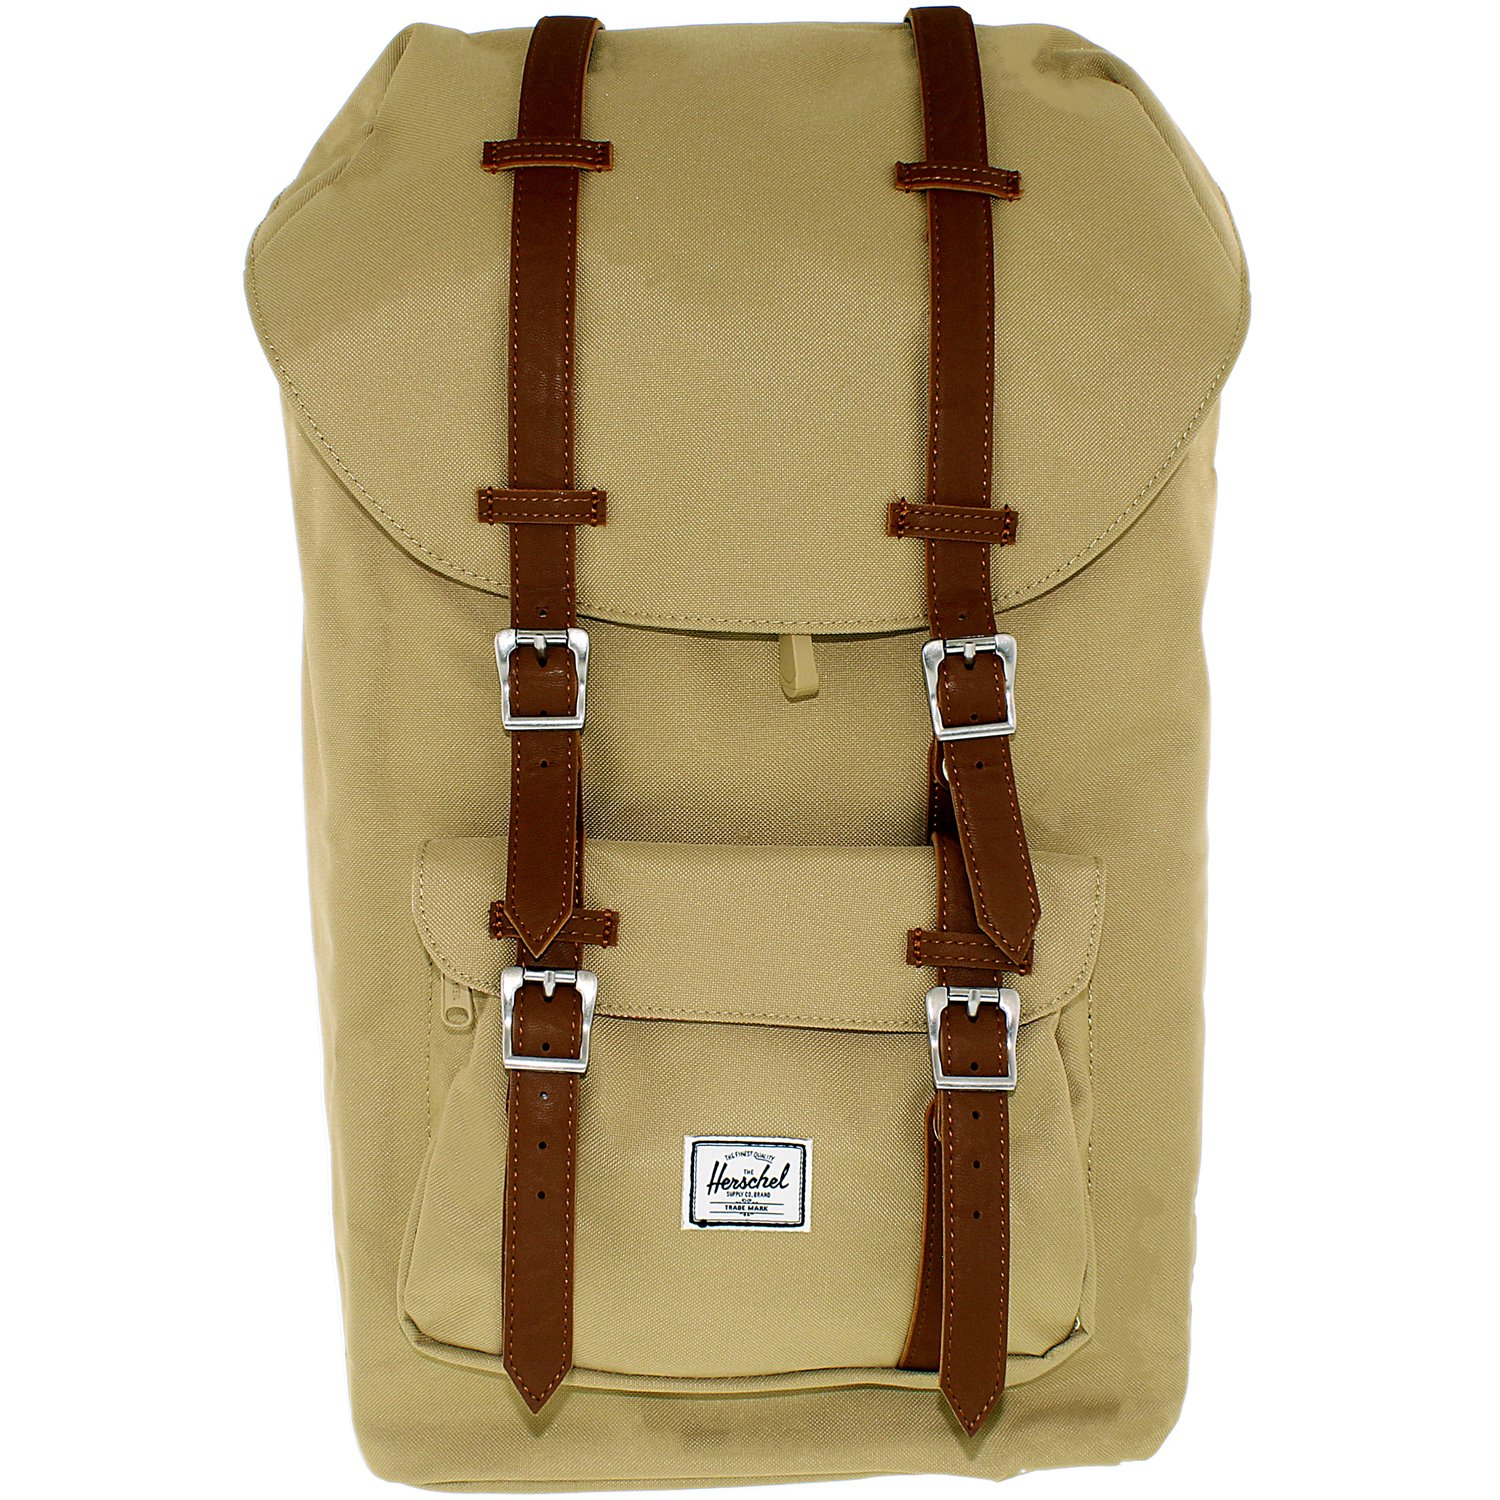 Buy Herschel Supply Co Little America Laptop Backpack - Khaki ... db003d81ef92b